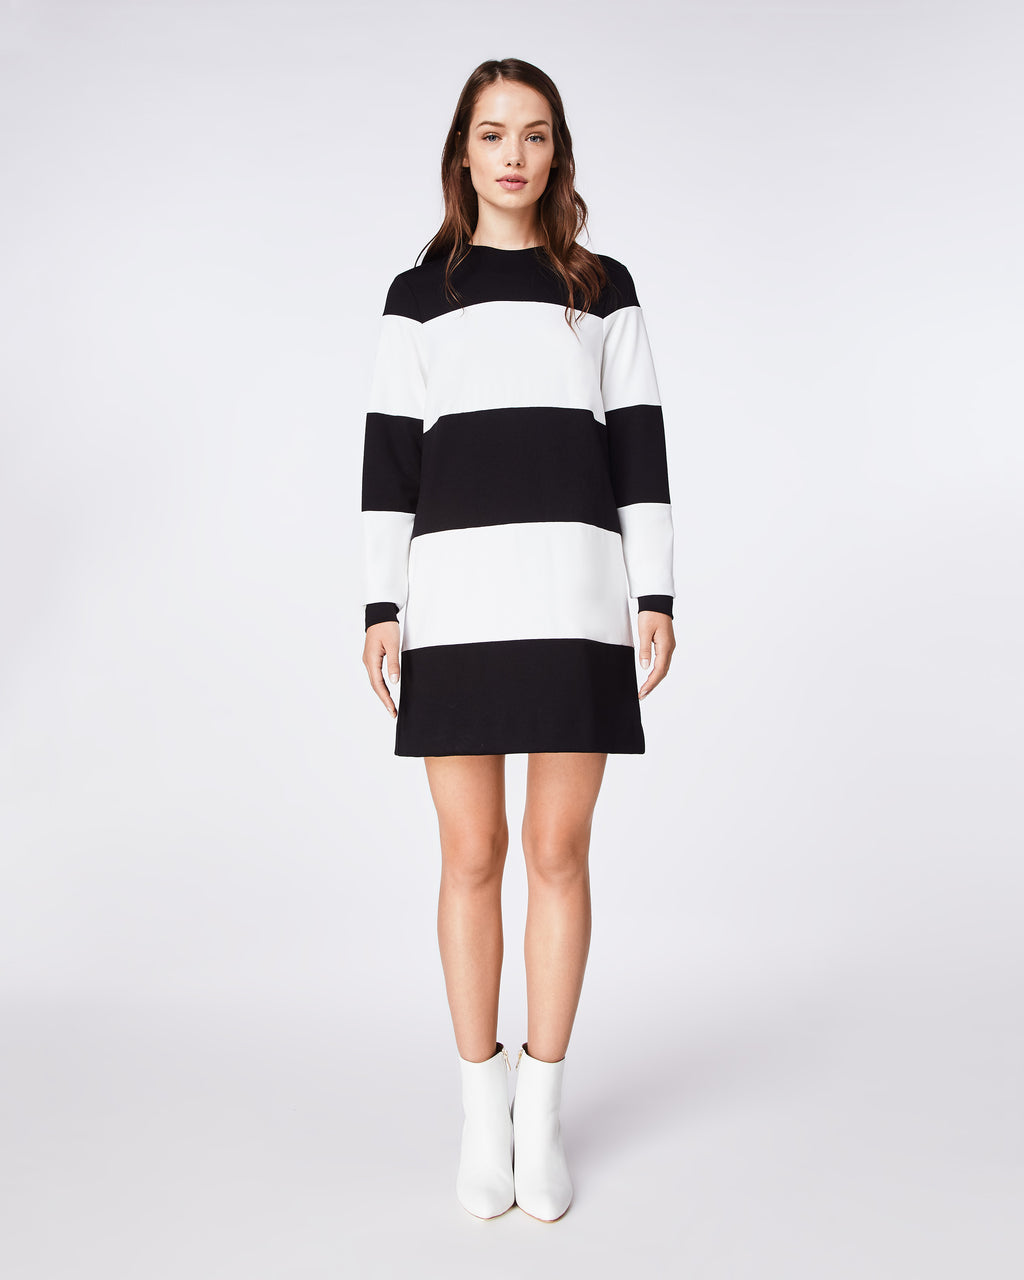 BJ10194 - PONTE STRIPED DRESS - dresses - short - A LONG SLEEVE STRIPED PONTE KNIT DRESS IS THE ULTIMATE TRANSITION PIECE. EASY TO WEAR AND VERSATILE FROM WORK TO WEEKEND.